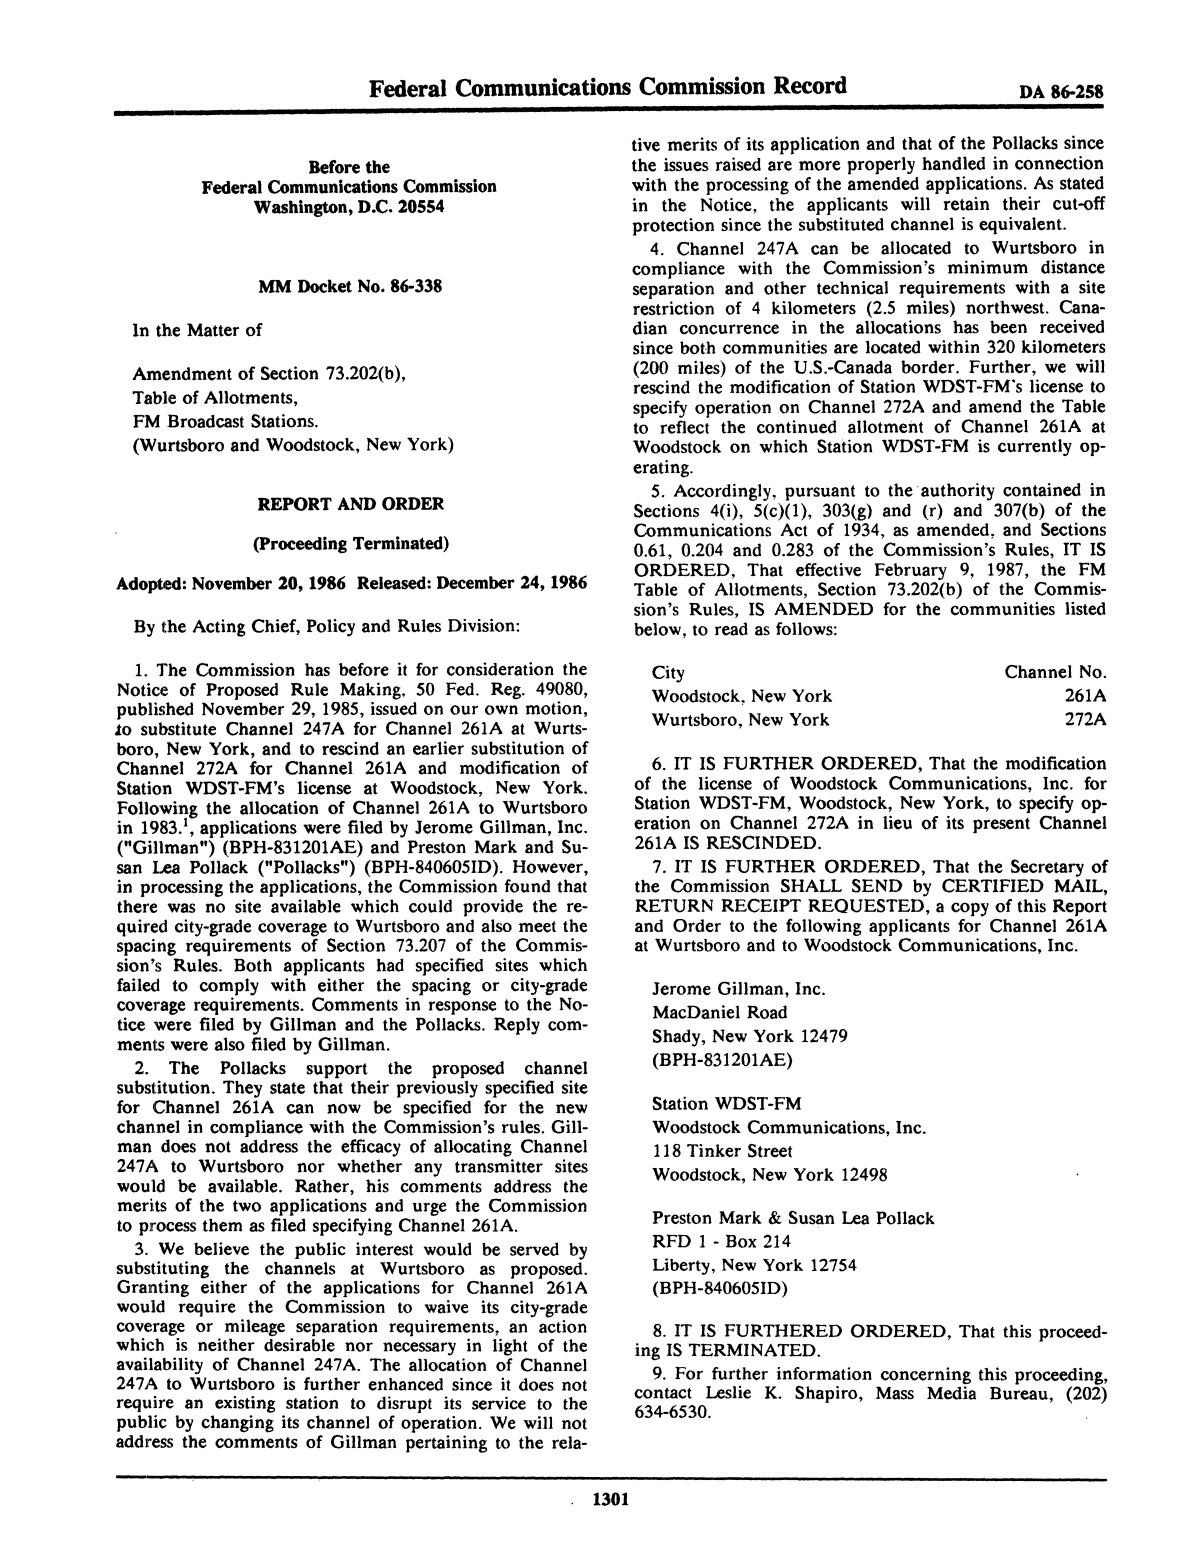 FCC Record, Volume 1, No. 7, Pages 1267 to 1368, December 22, 1986 - January 2, 1987                                                                                                      1301